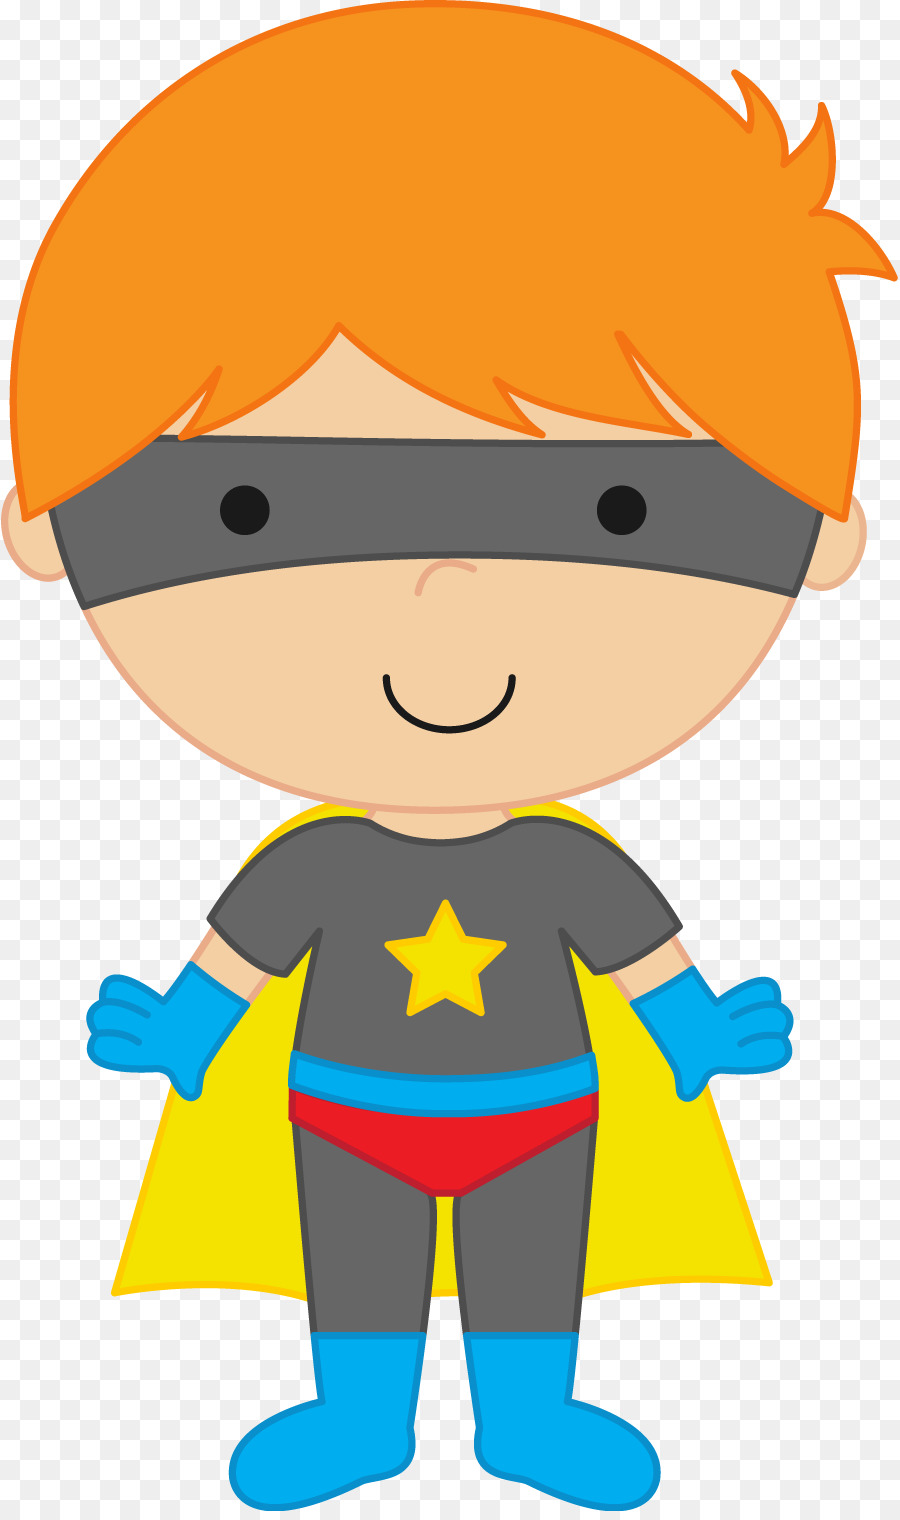 Superhero clipart png 2 » Clipart Station.